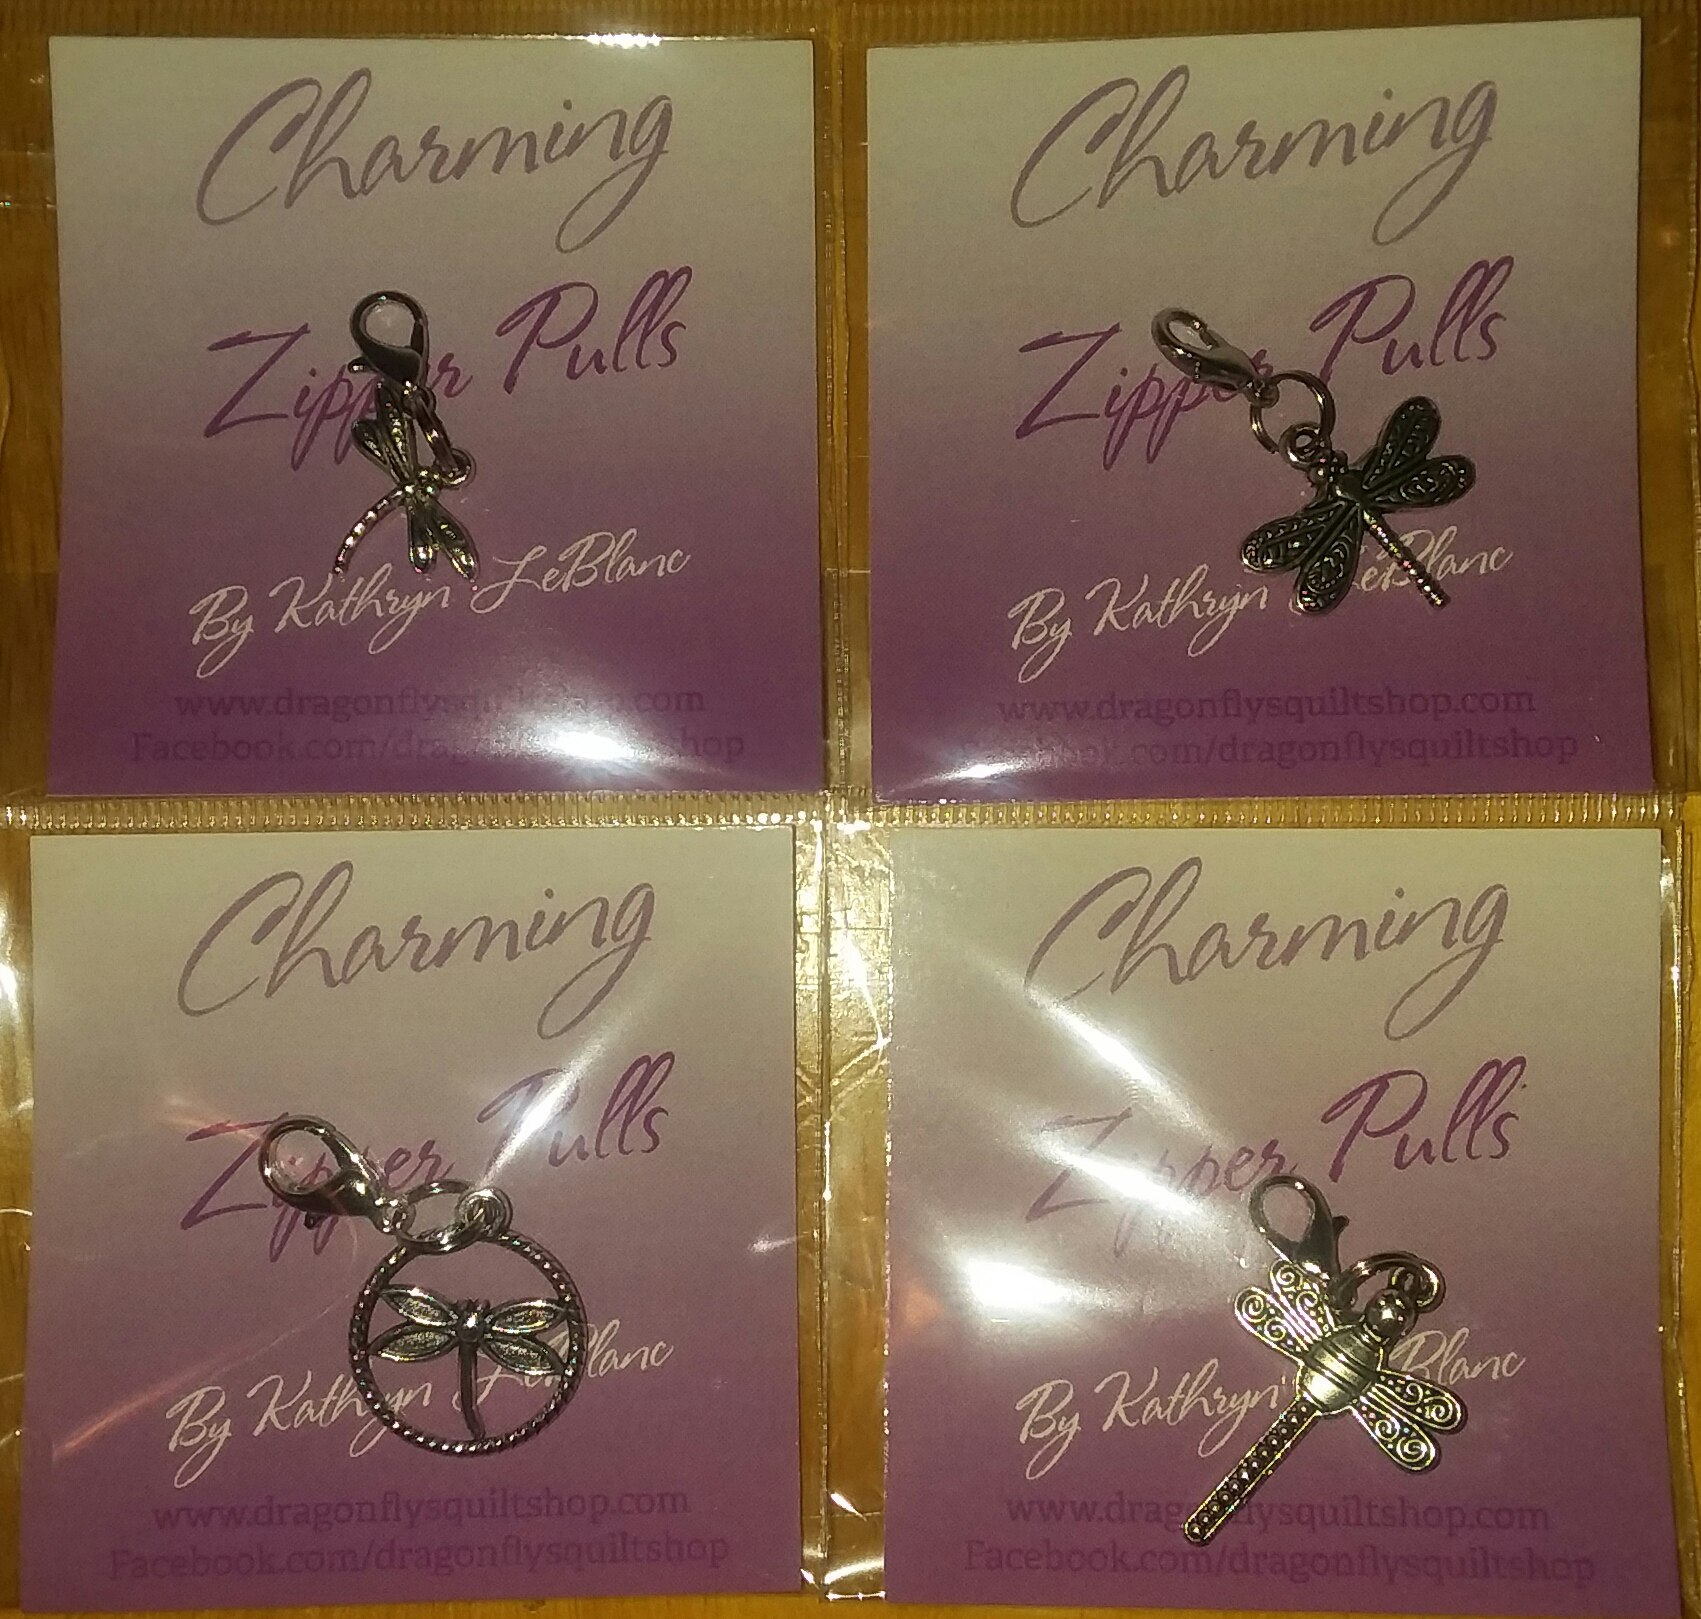 Charming Zipper Pulls - 4 for $10 SET 2  Four Dragonflies